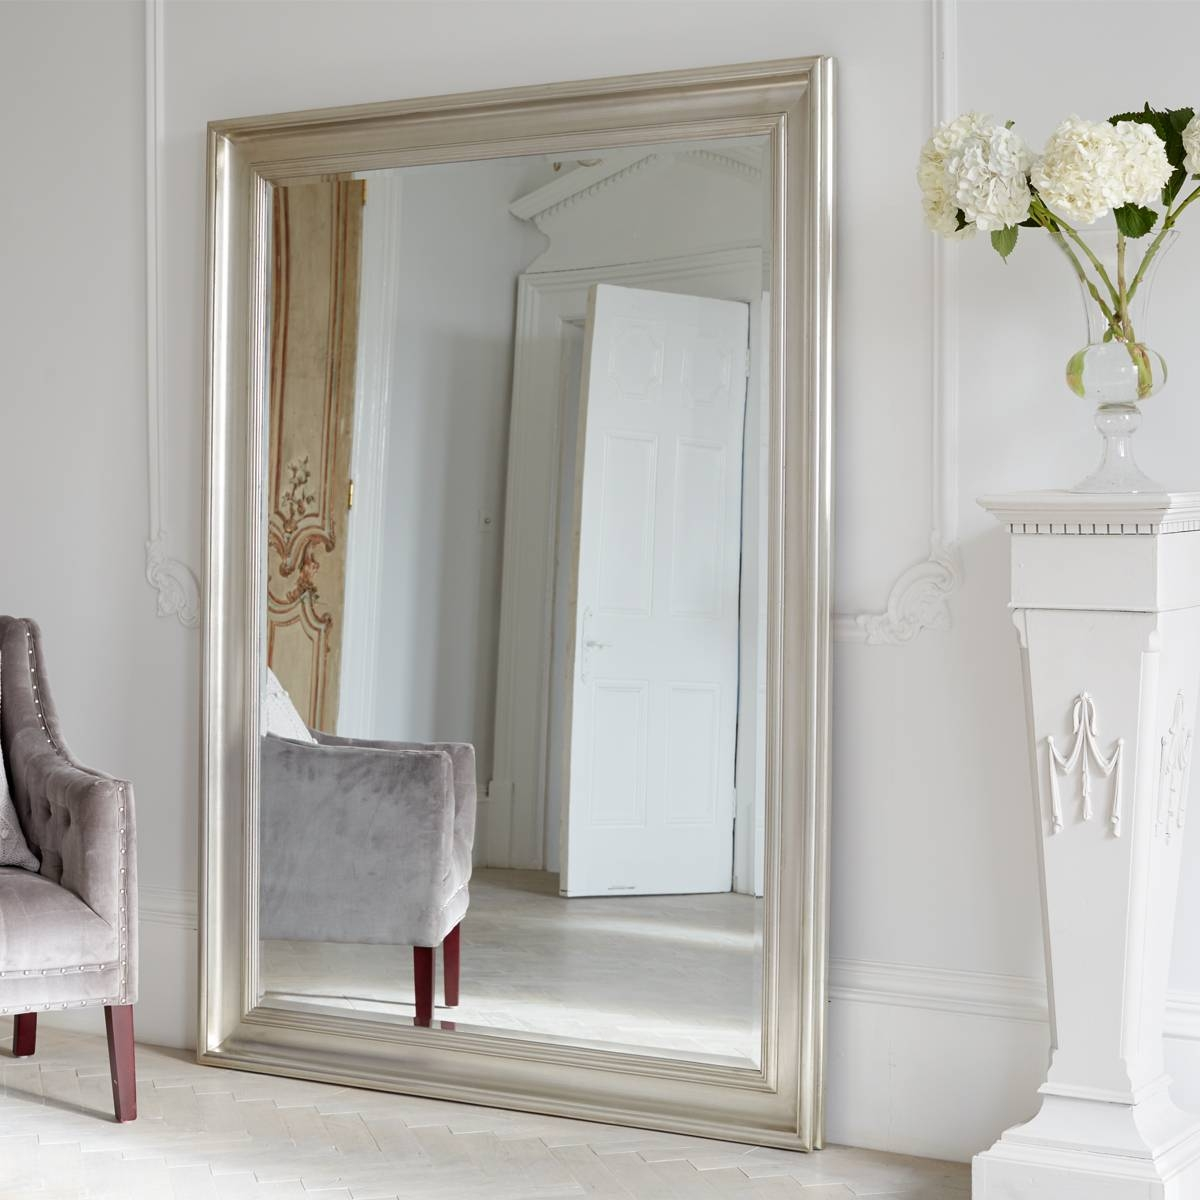 Wall Mirrors - Full-Length Mirrors - Oversized Mirrors. Vintage inside Full Length Vintage Mirrors (Image 24 of 25)